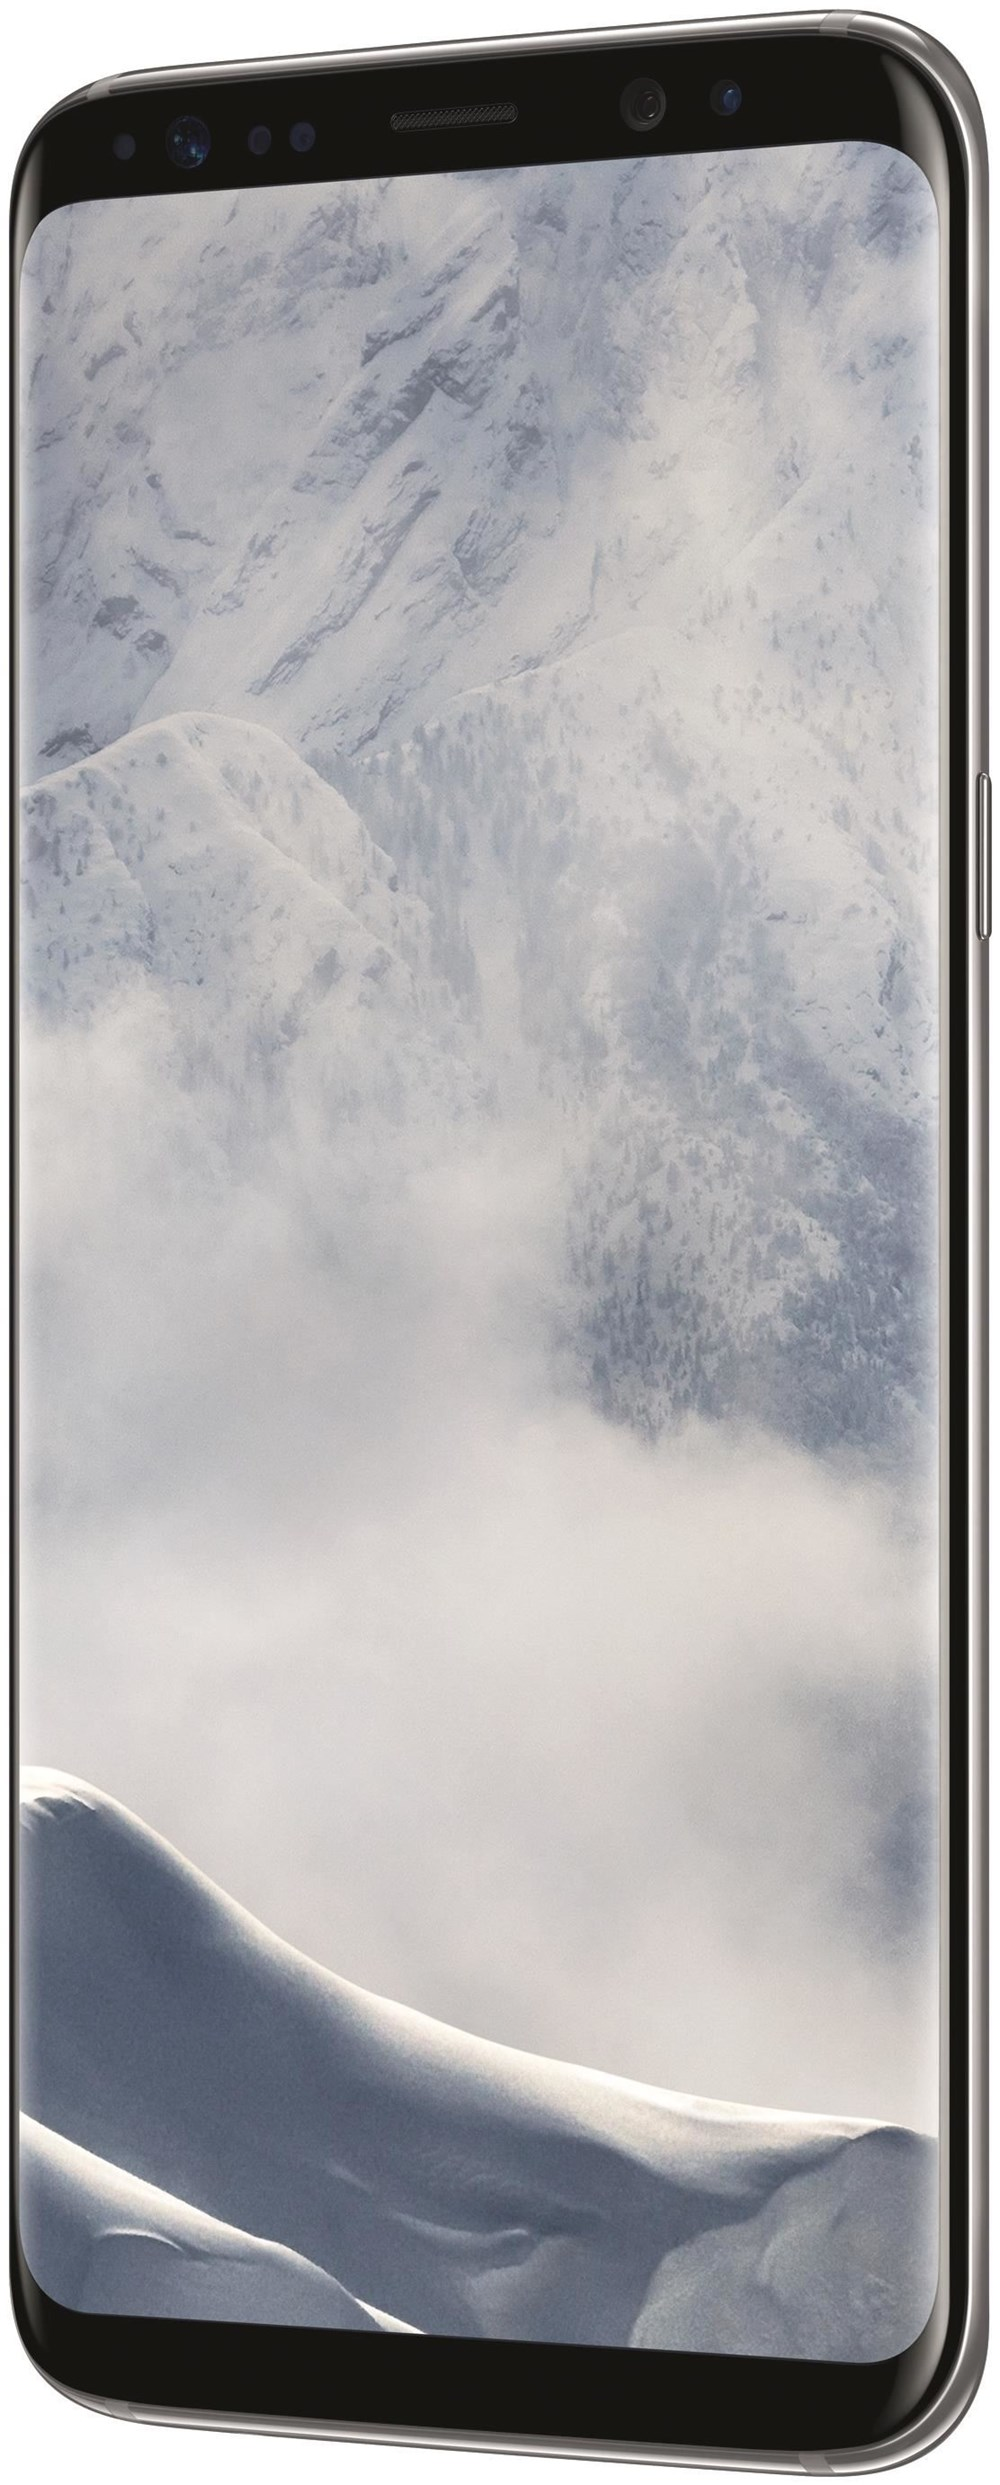 Samsung GALAXY S8 arctic silver G950F 64 GB Android Smartphone ...